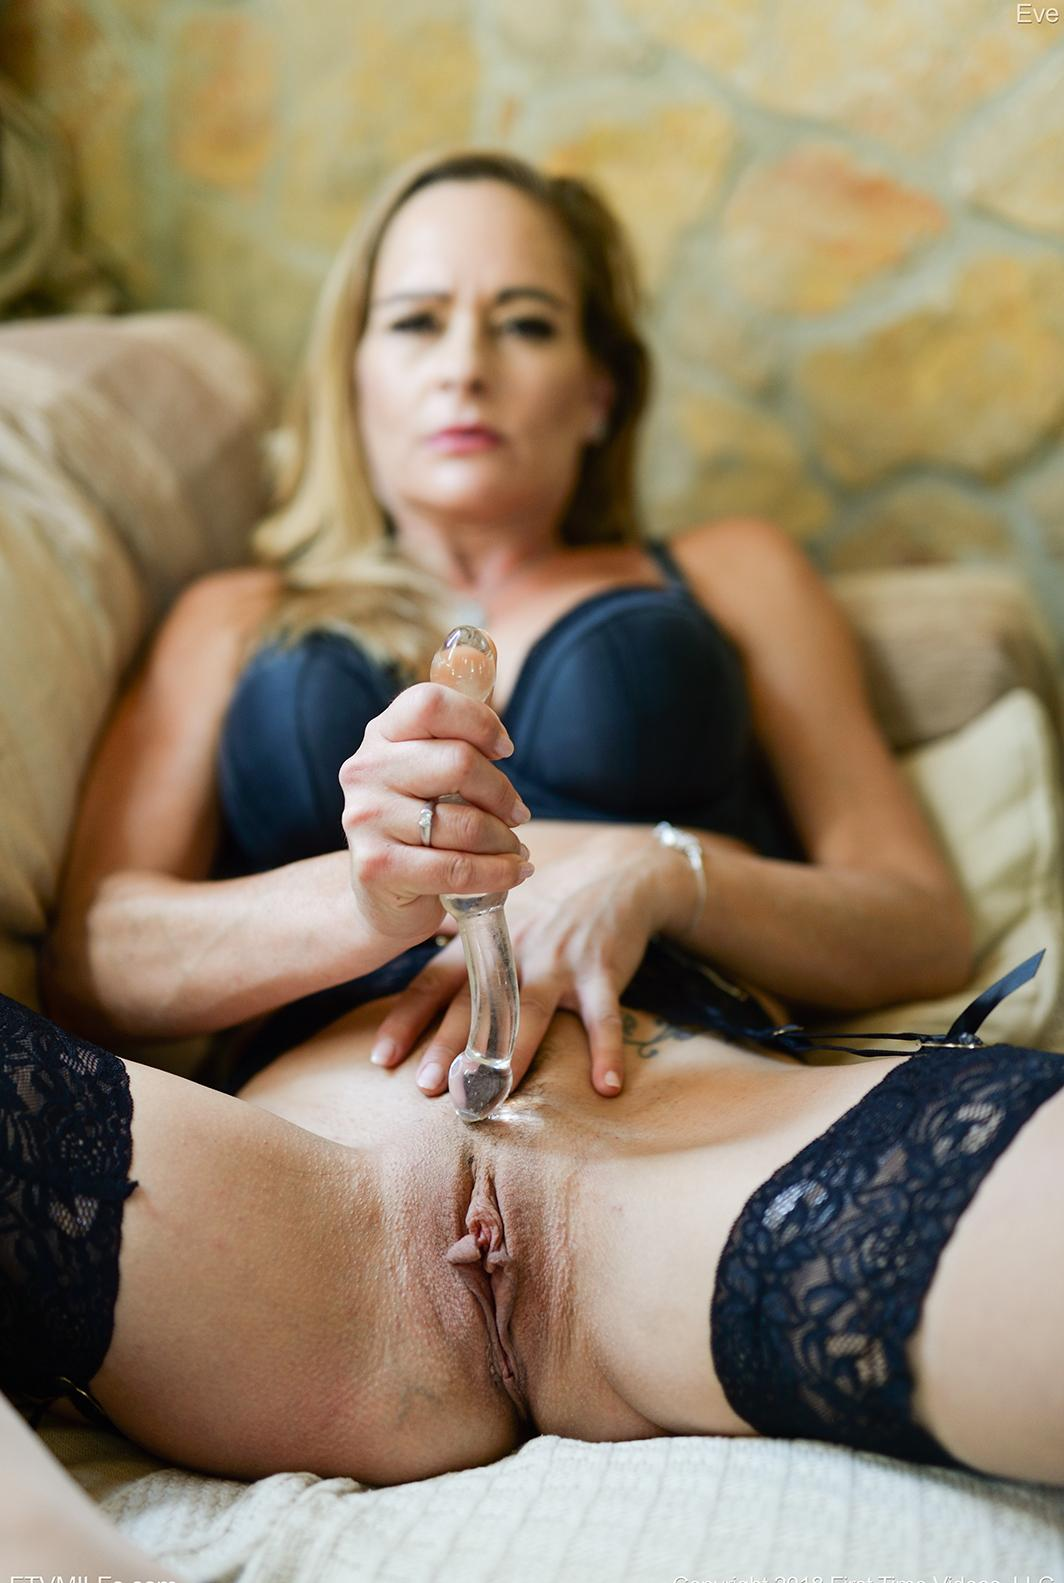 kinky french mom puts something dirty between her legs picture 7